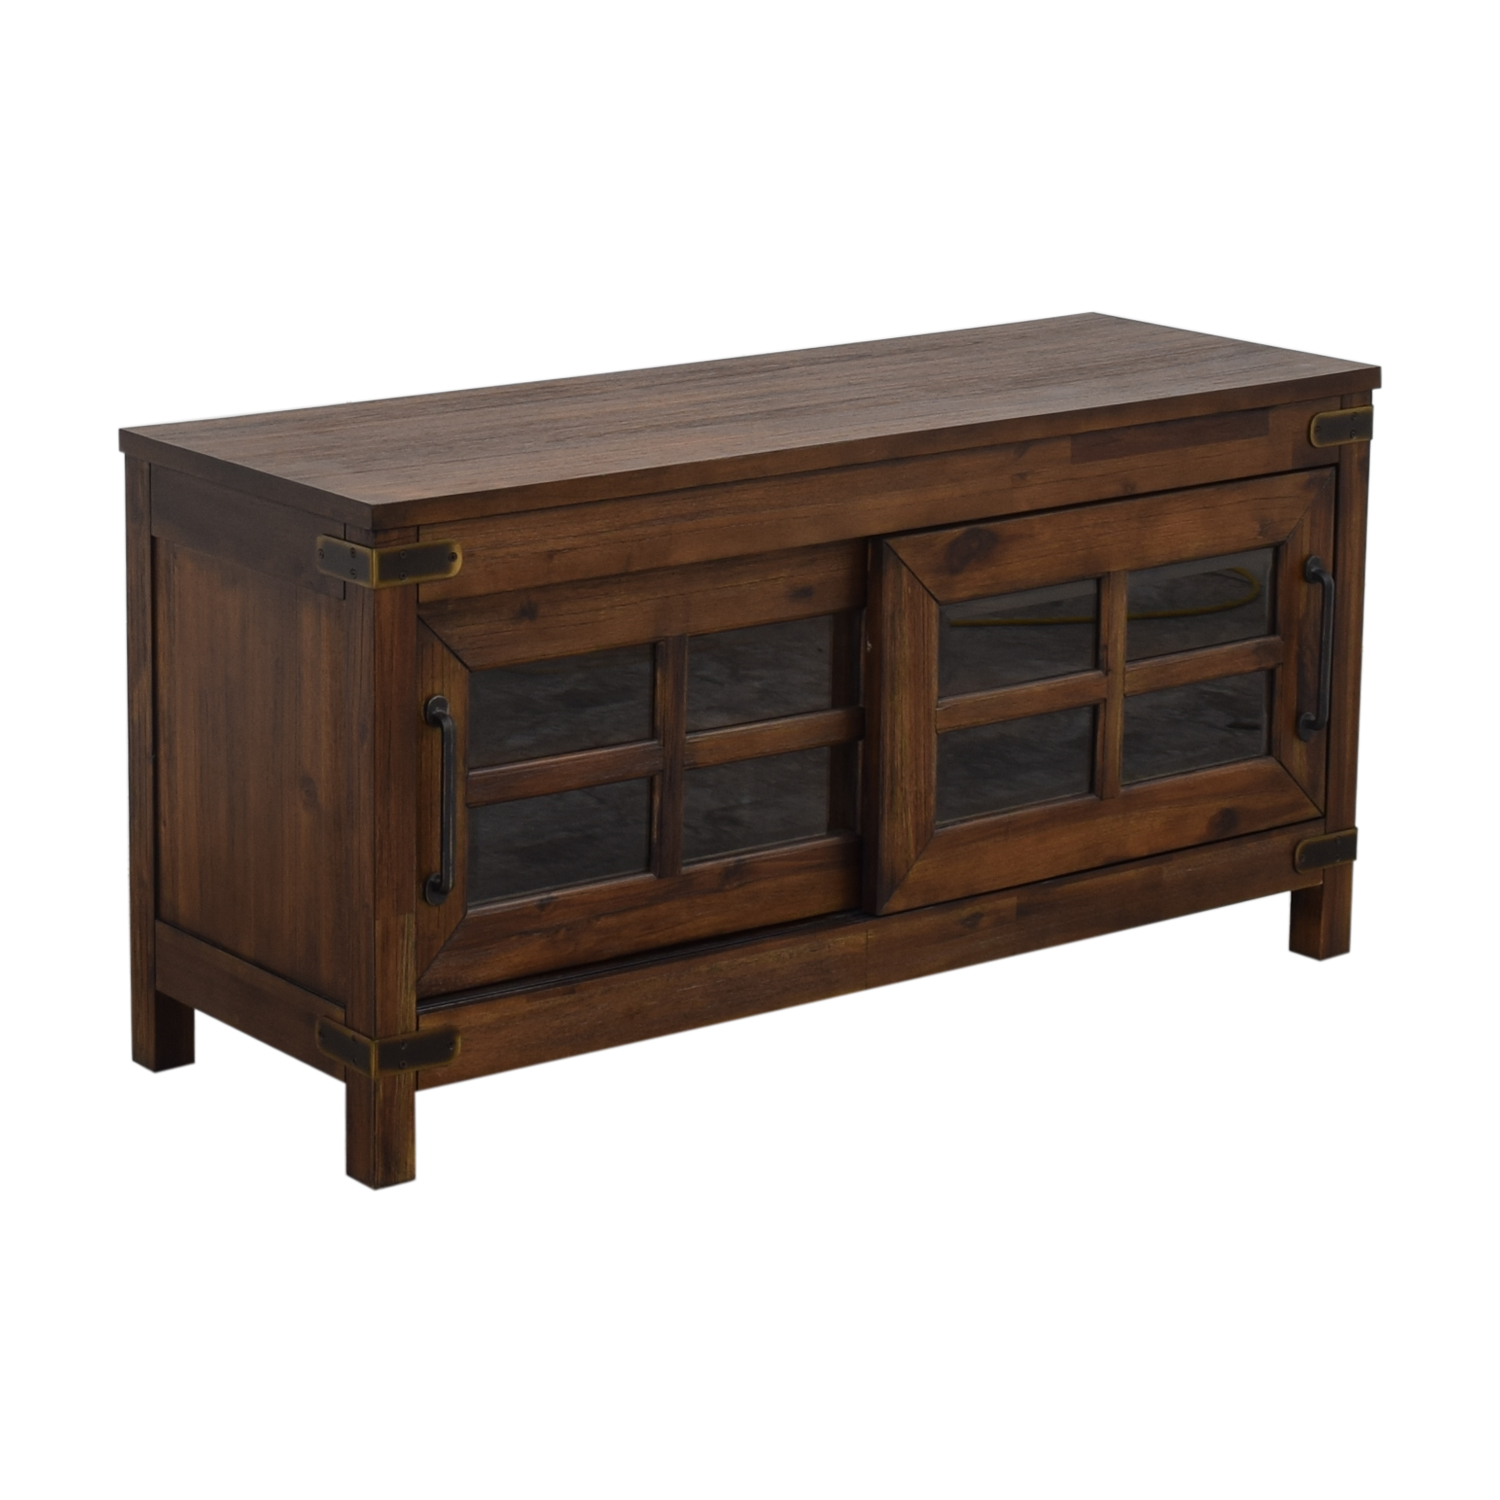 shop Bob's Discount Furniture Boulder Entertainment Console Bob's Discount Furniture